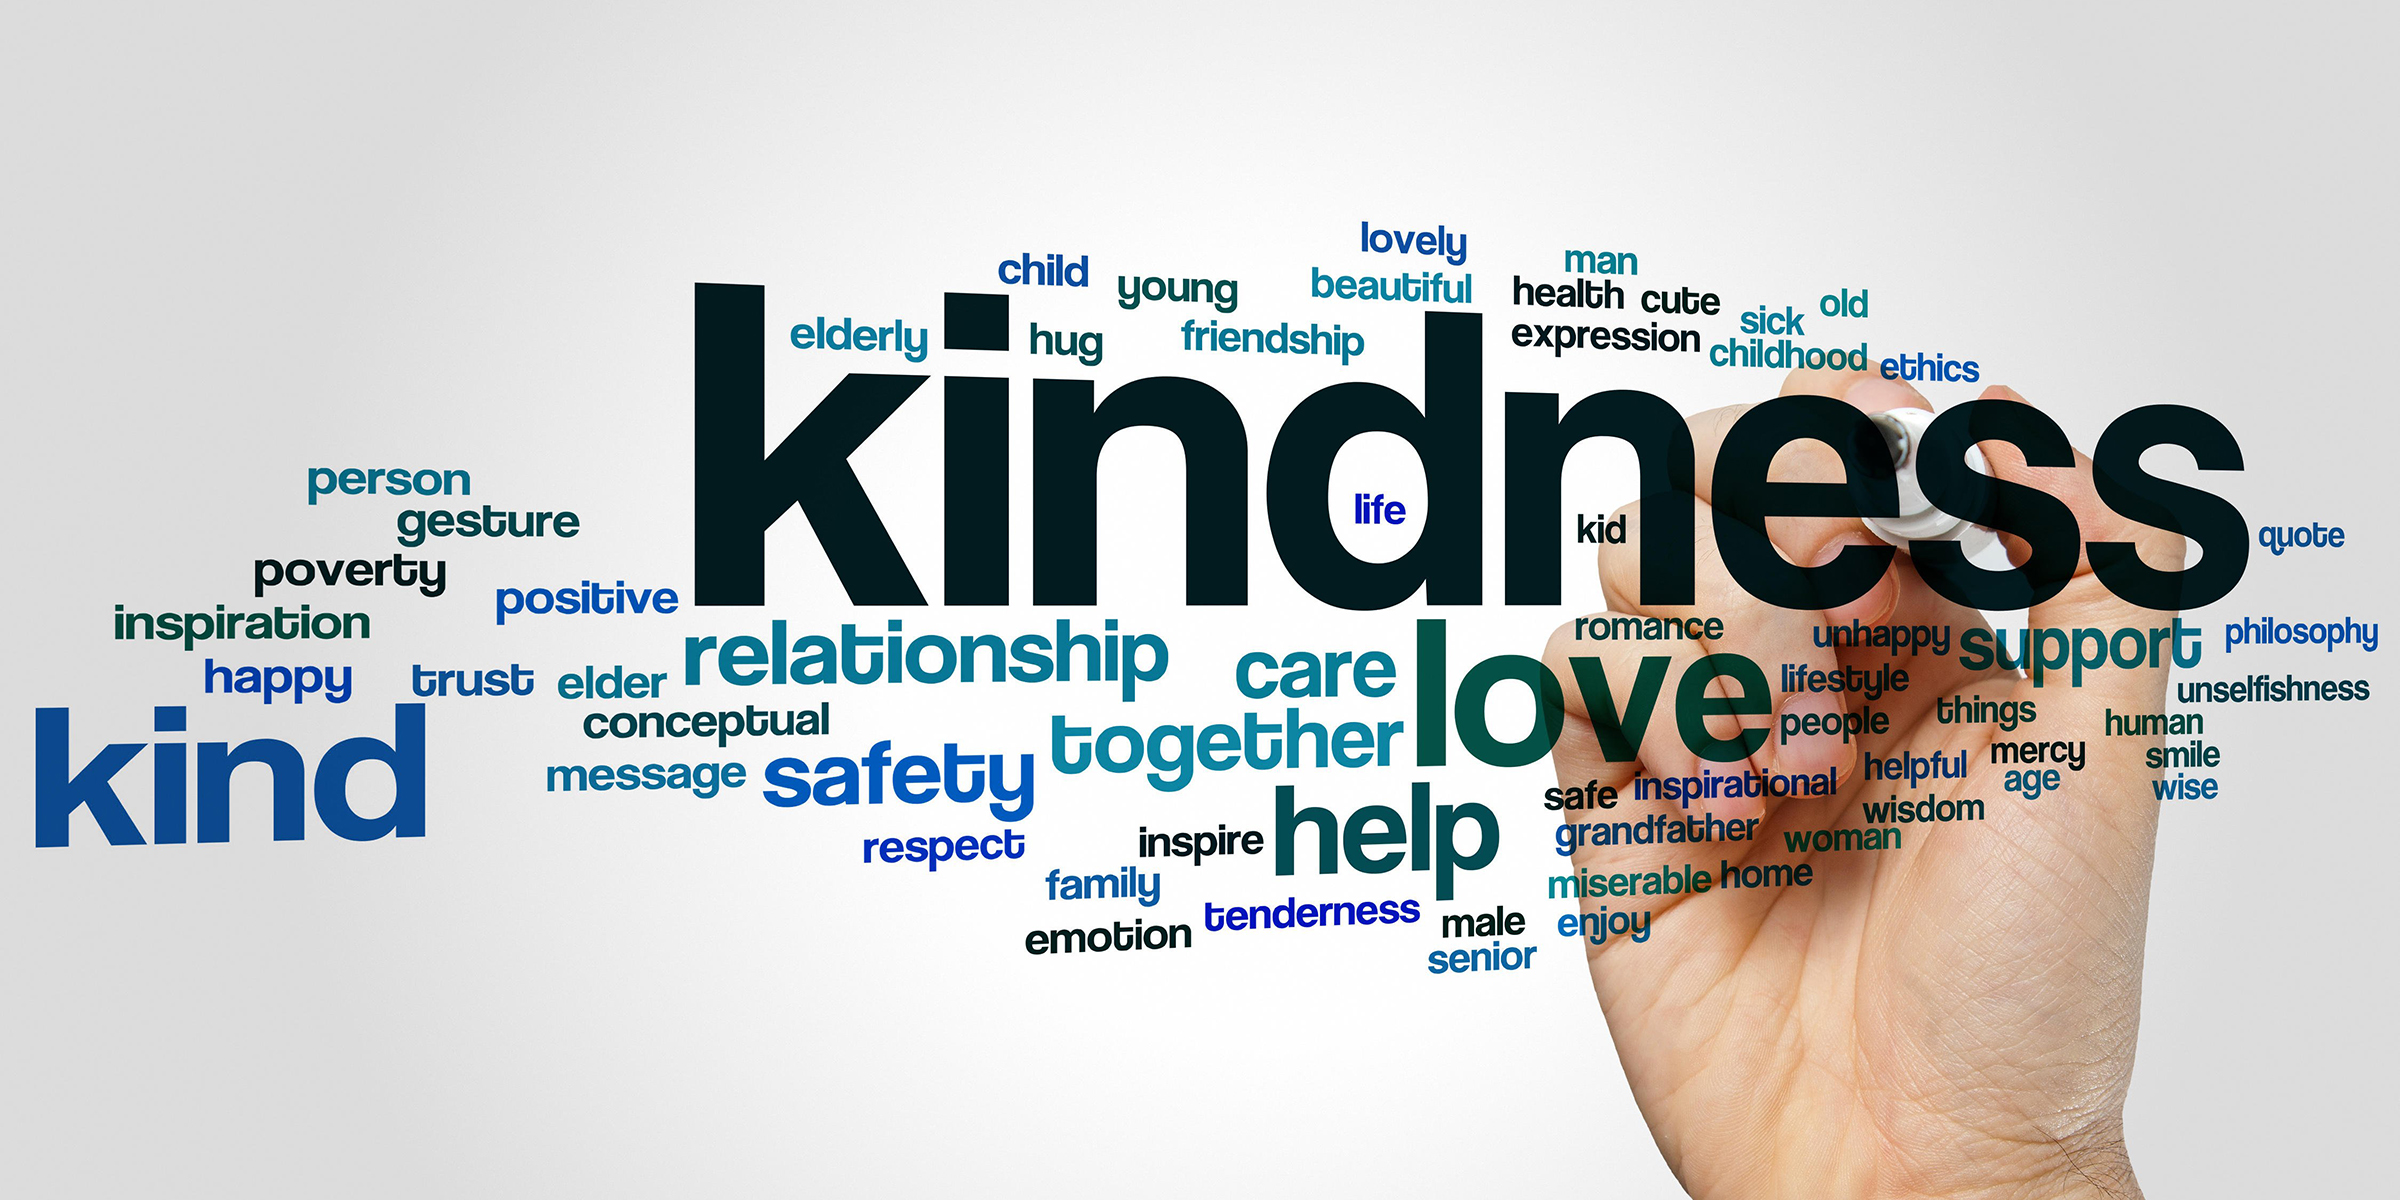 Tell us how an act of kindness has changed your life